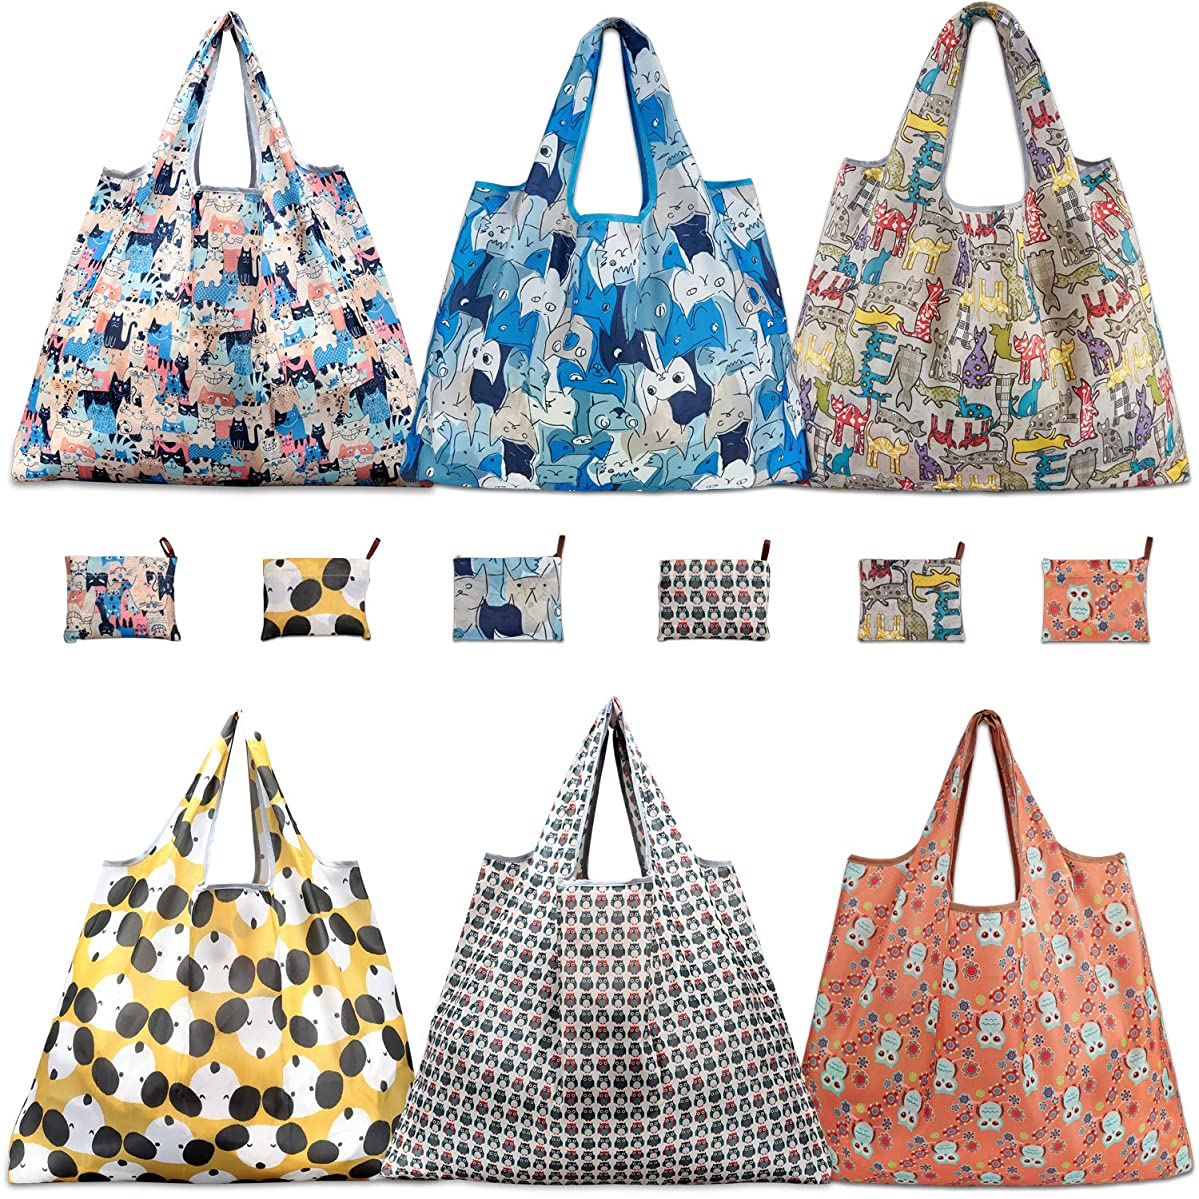 Reusable Grocery Bags, TEOYALL 6 Pack Eco Friendly Large Foldable Grocery Tote Bag Heavy Duty Washable Shopping Bags (6 Pack)